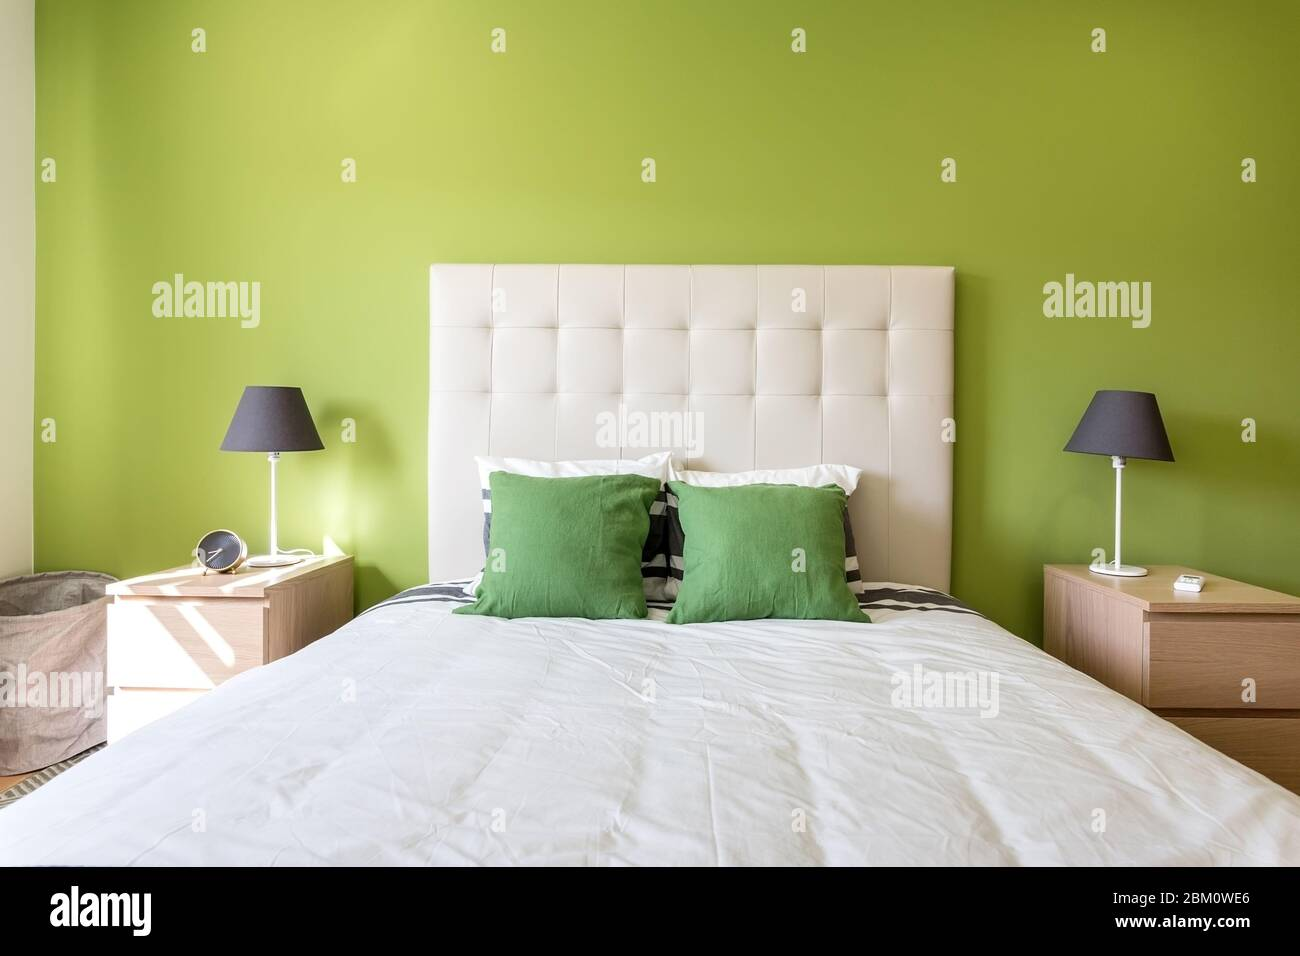 Modern Bedroom In White And Green Colors European Hotel Design And Inside Stock Photo Alamy